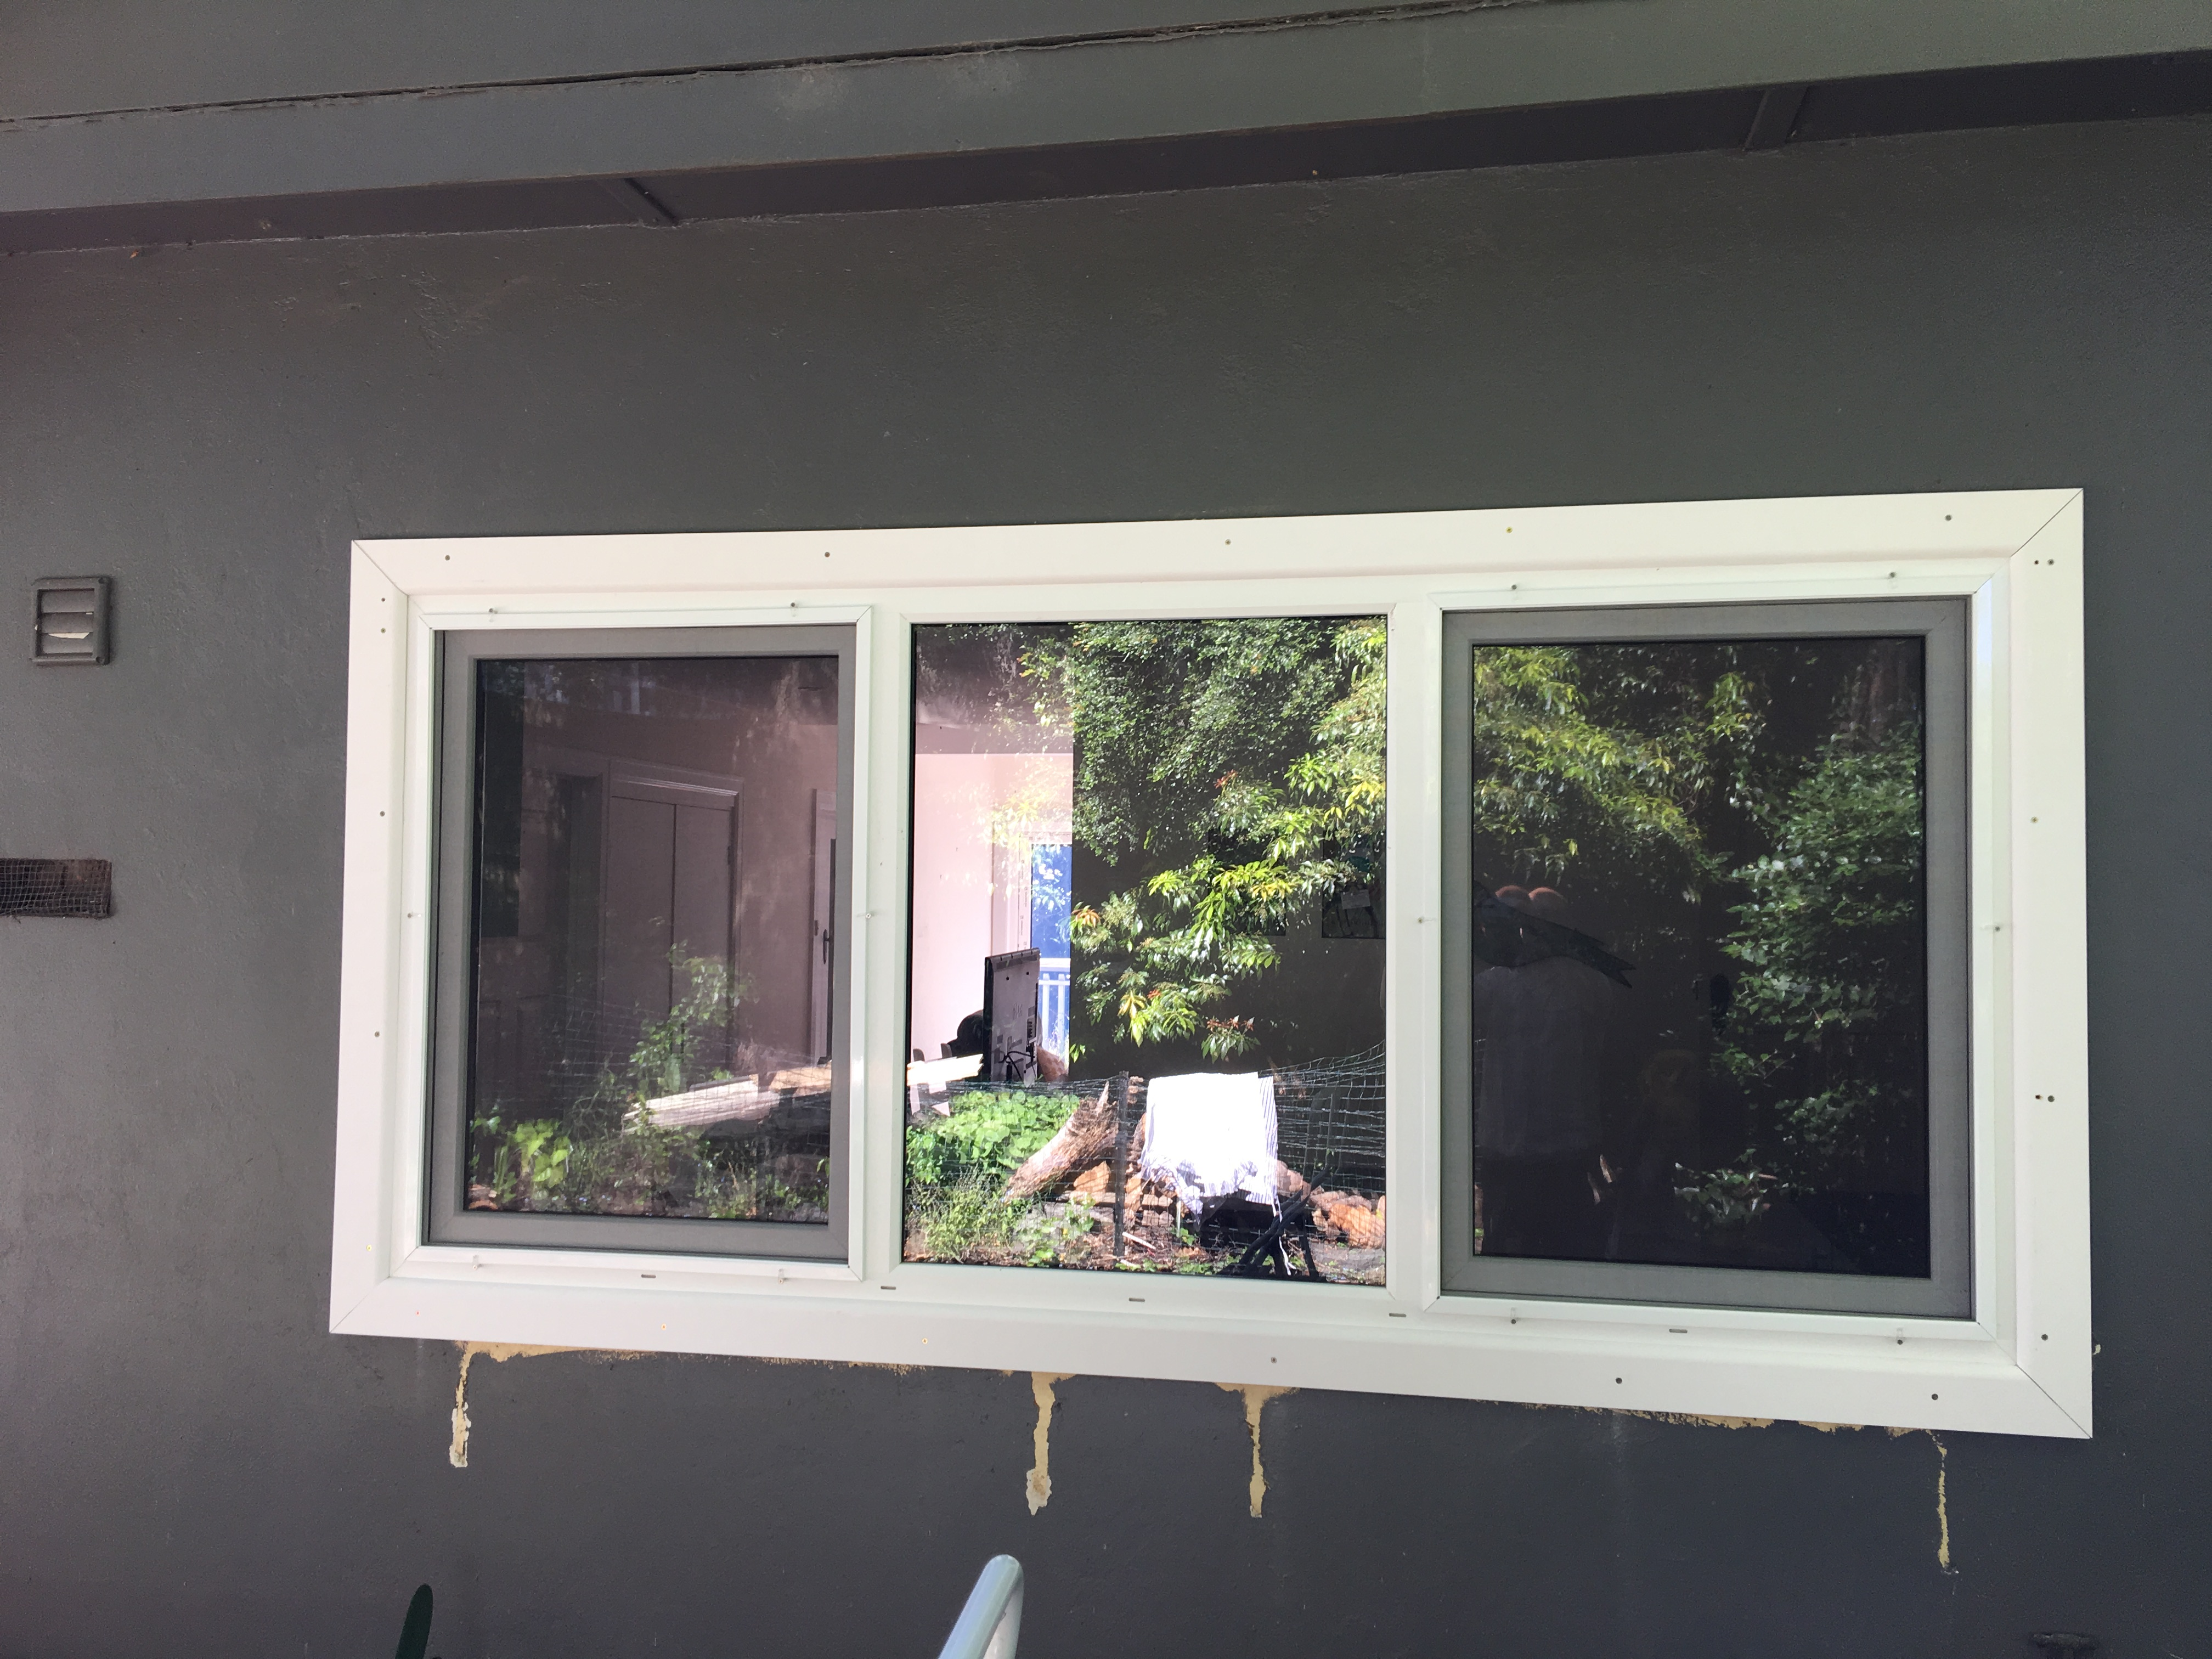 Installation of double glazing windows in Sassafras, Victoria, Australia